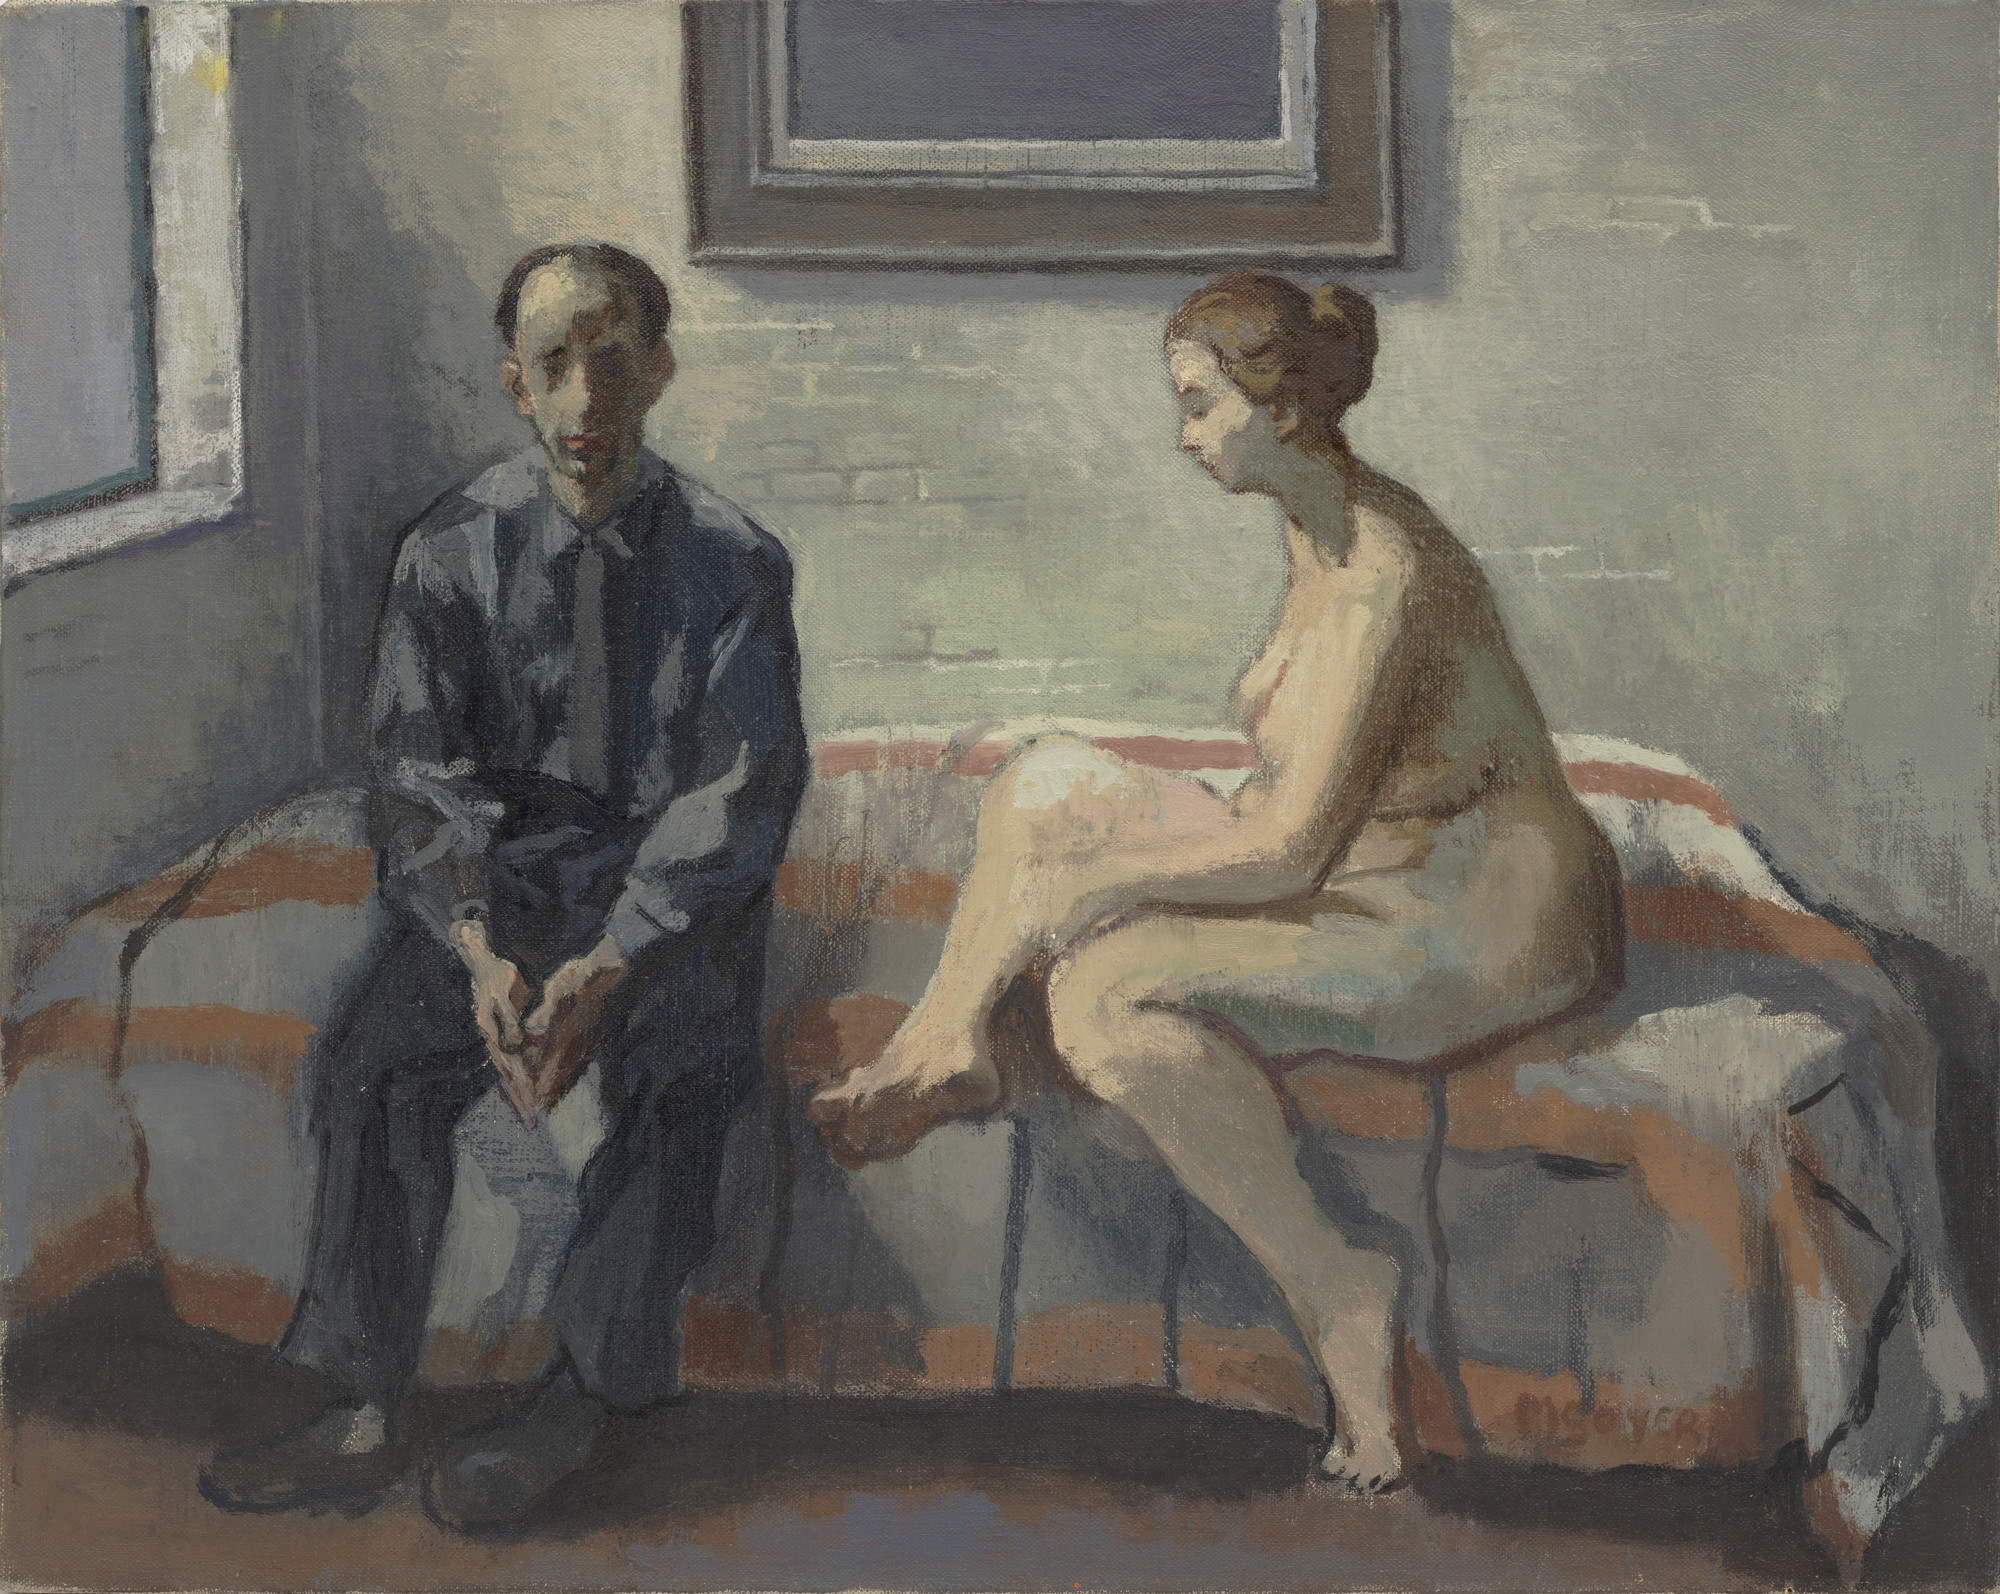 Moses Soyer. Artist and Model. 1962